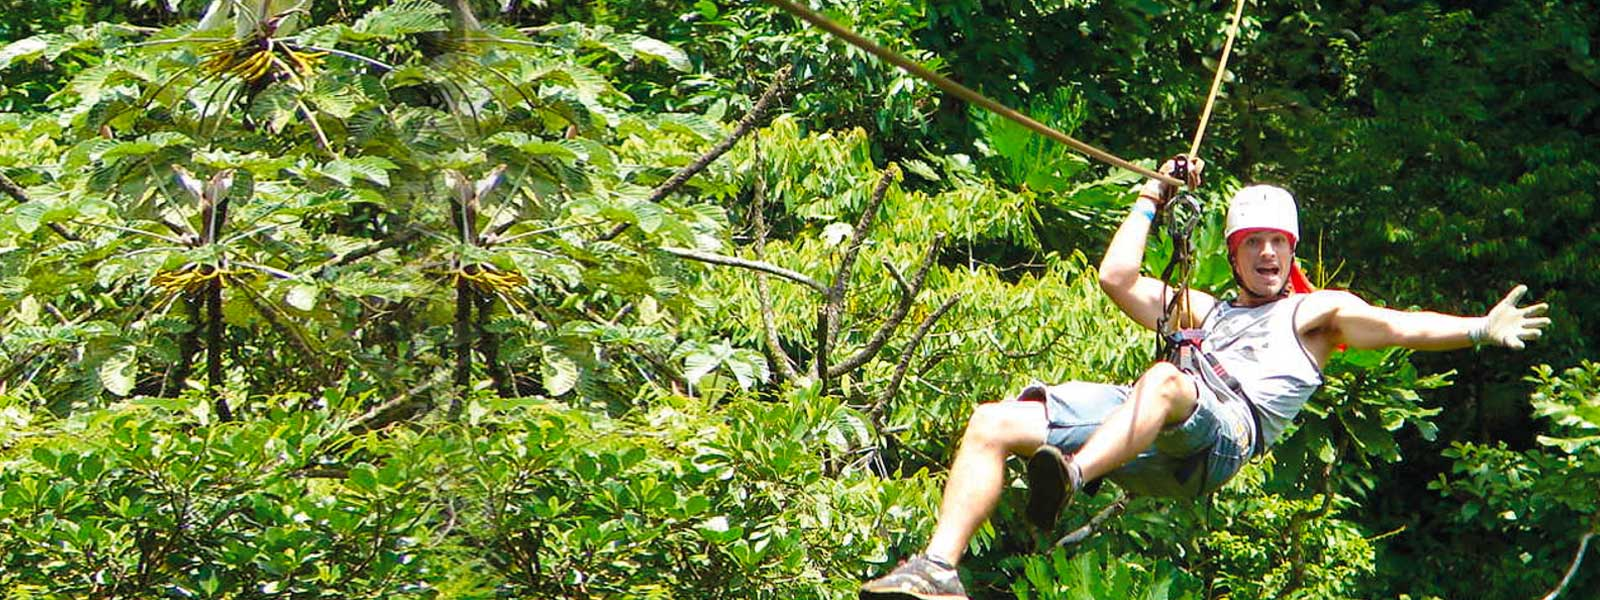 Participant Zip Lining in Costa Rica